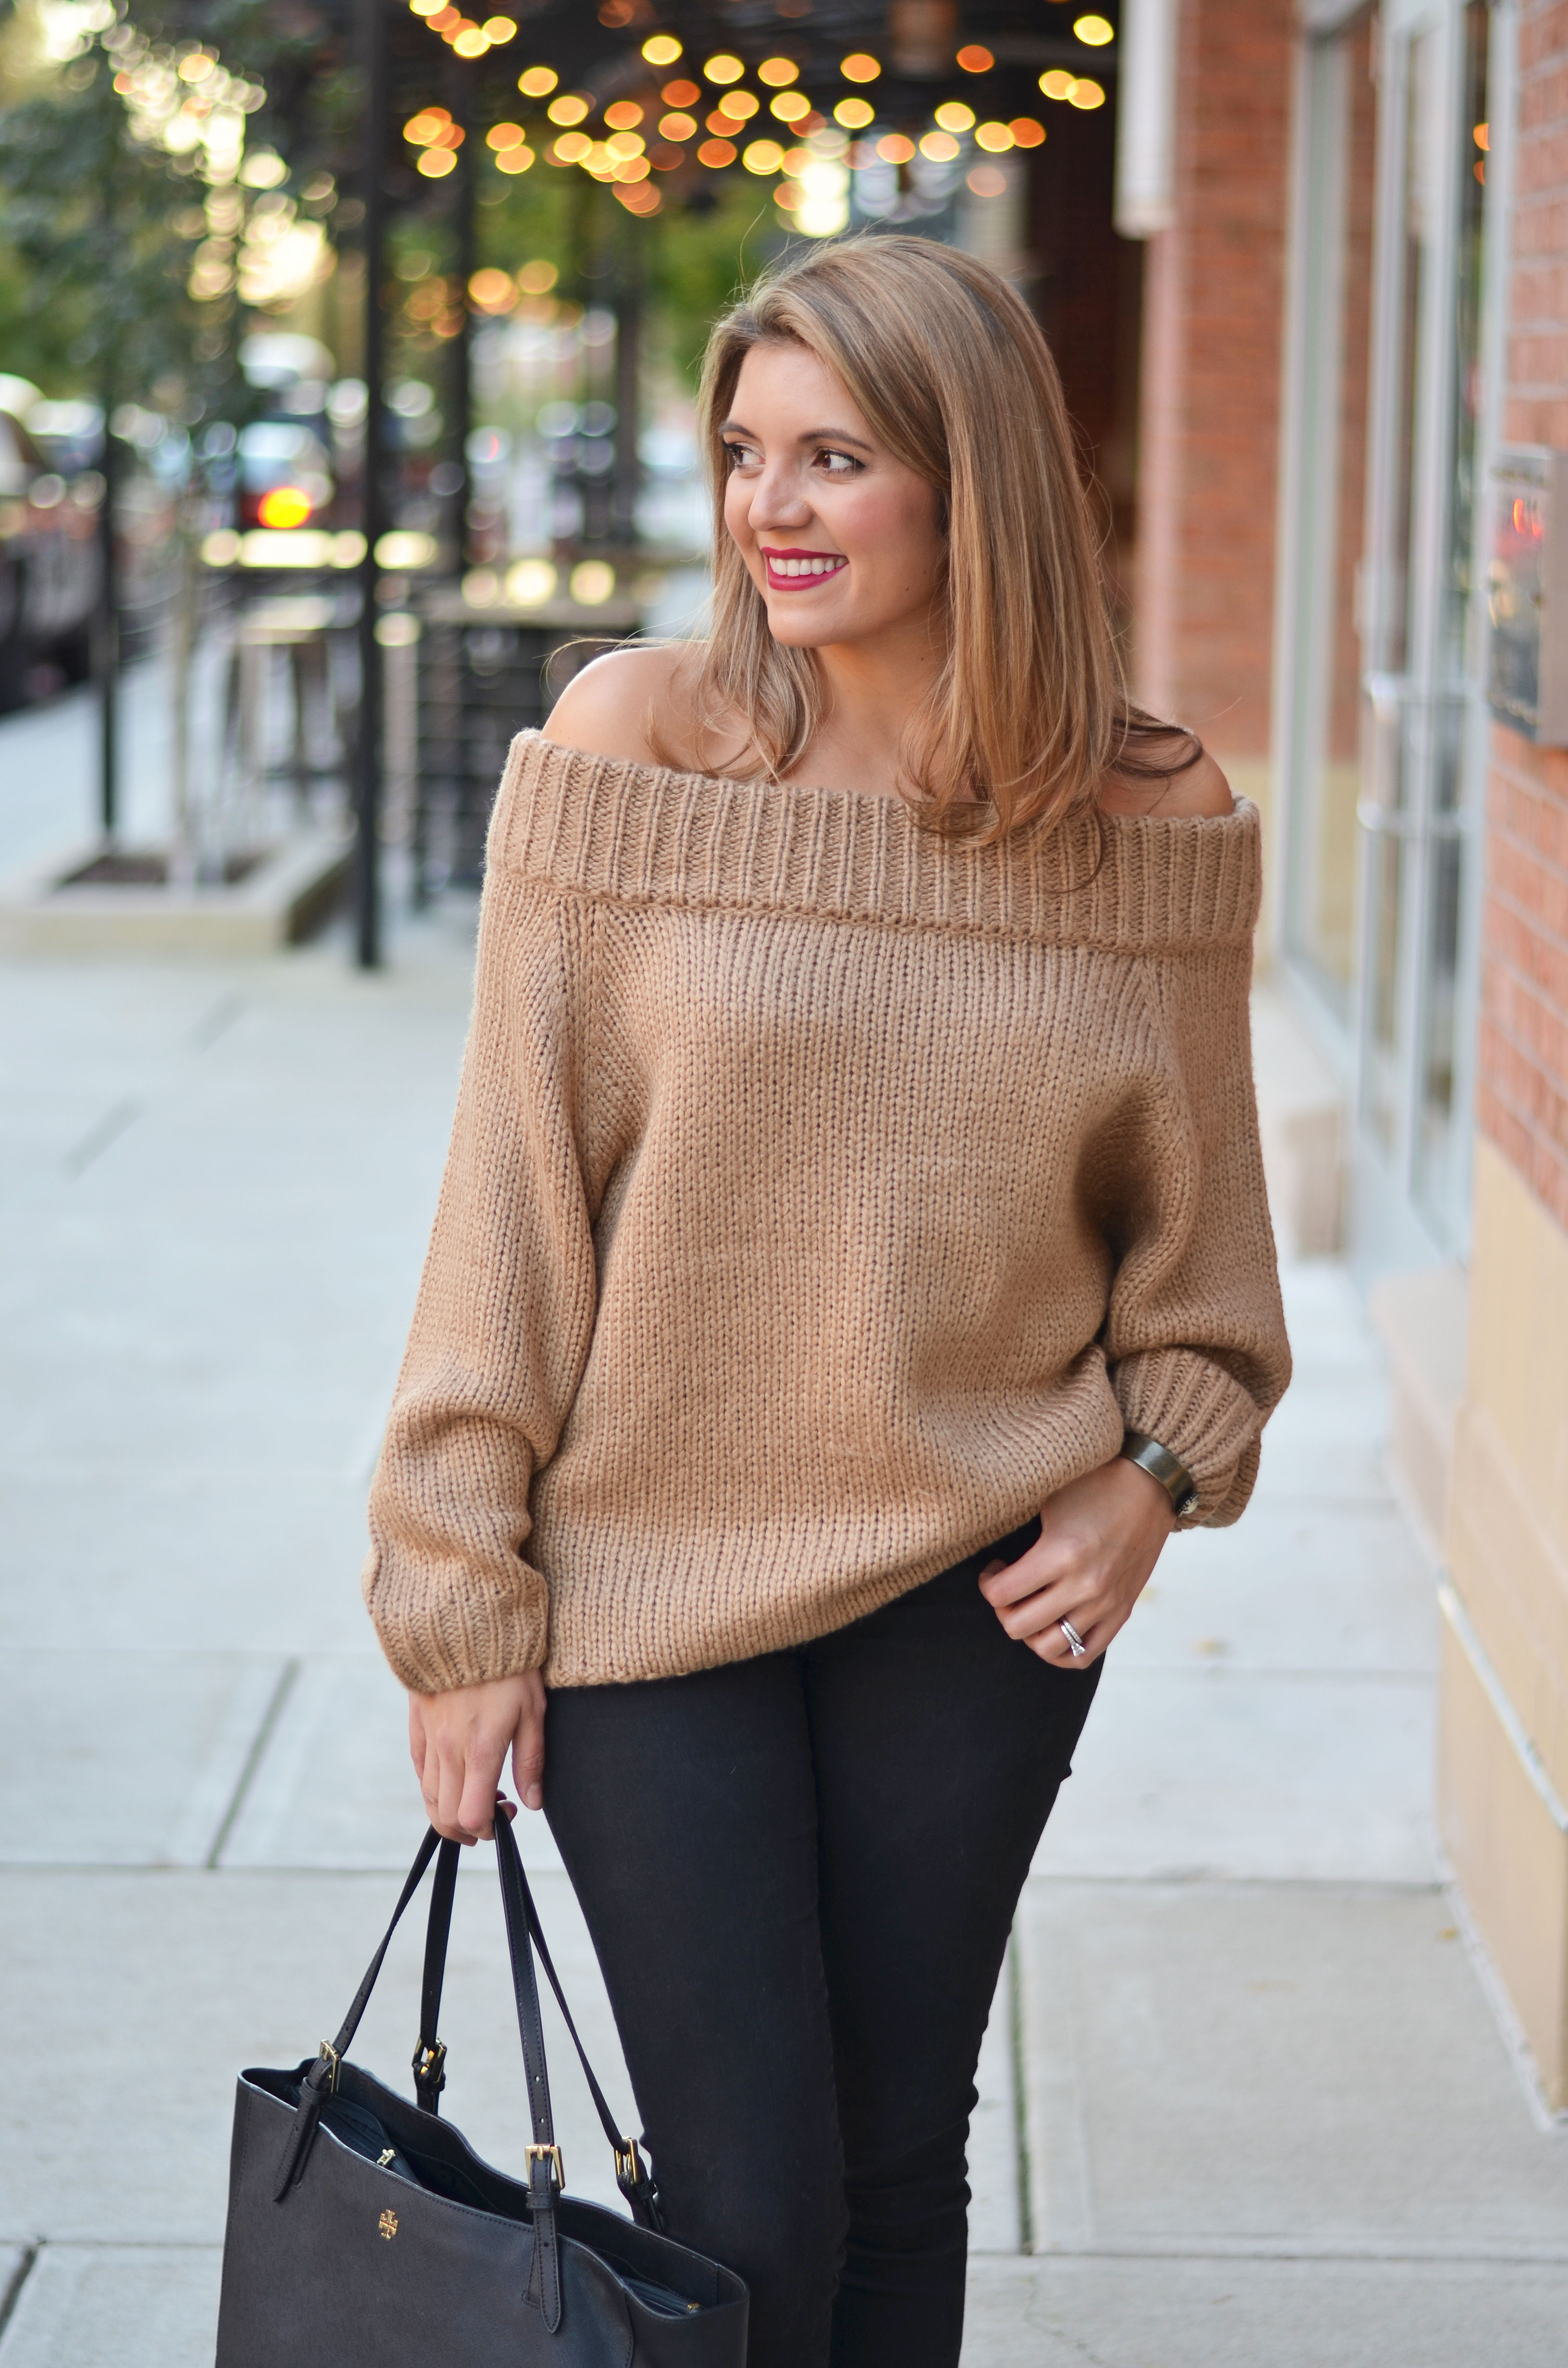 chunky off shoulder sweater - chunky camel sweater with black jeans | www.bylaurenm.com